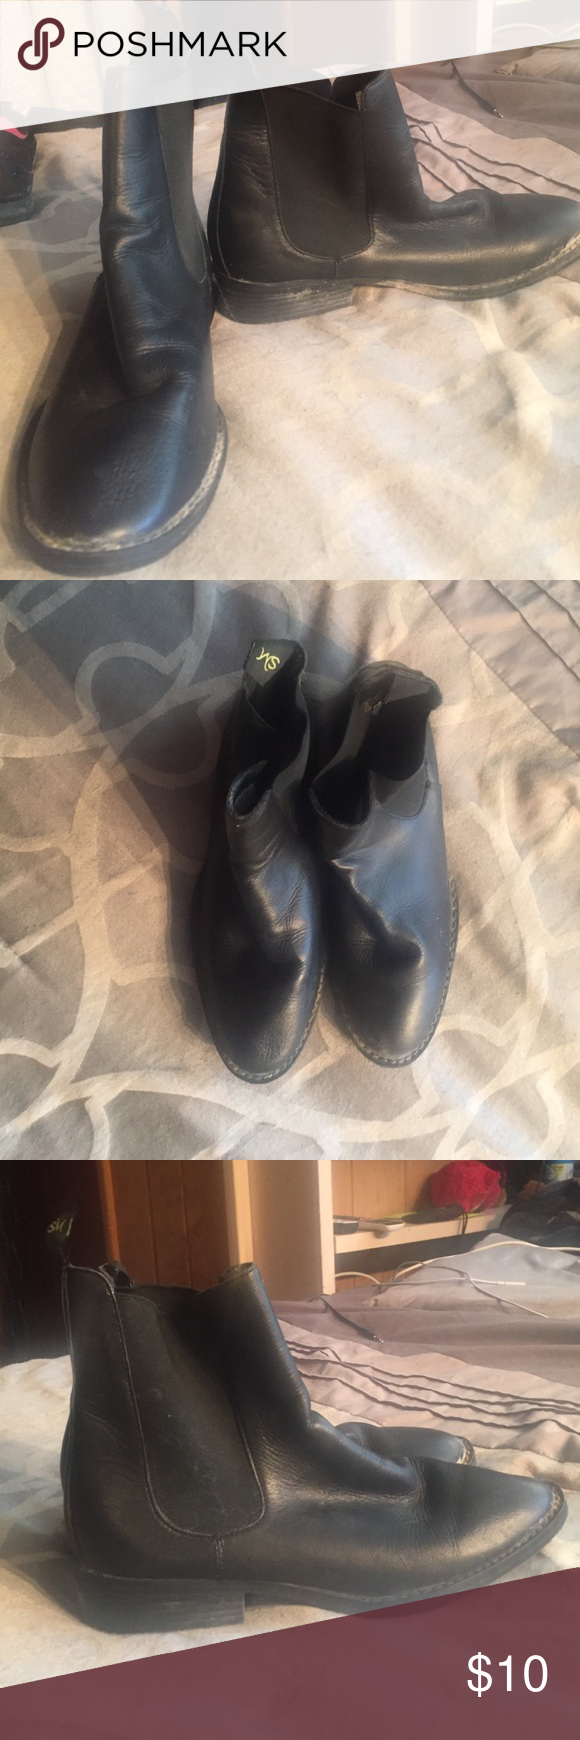 Black riding boots Black ankle riding boots. Size 9. Used for horseback riding for one semester. Good condition. Make an offer! Shoes Ankle Boots & Booties